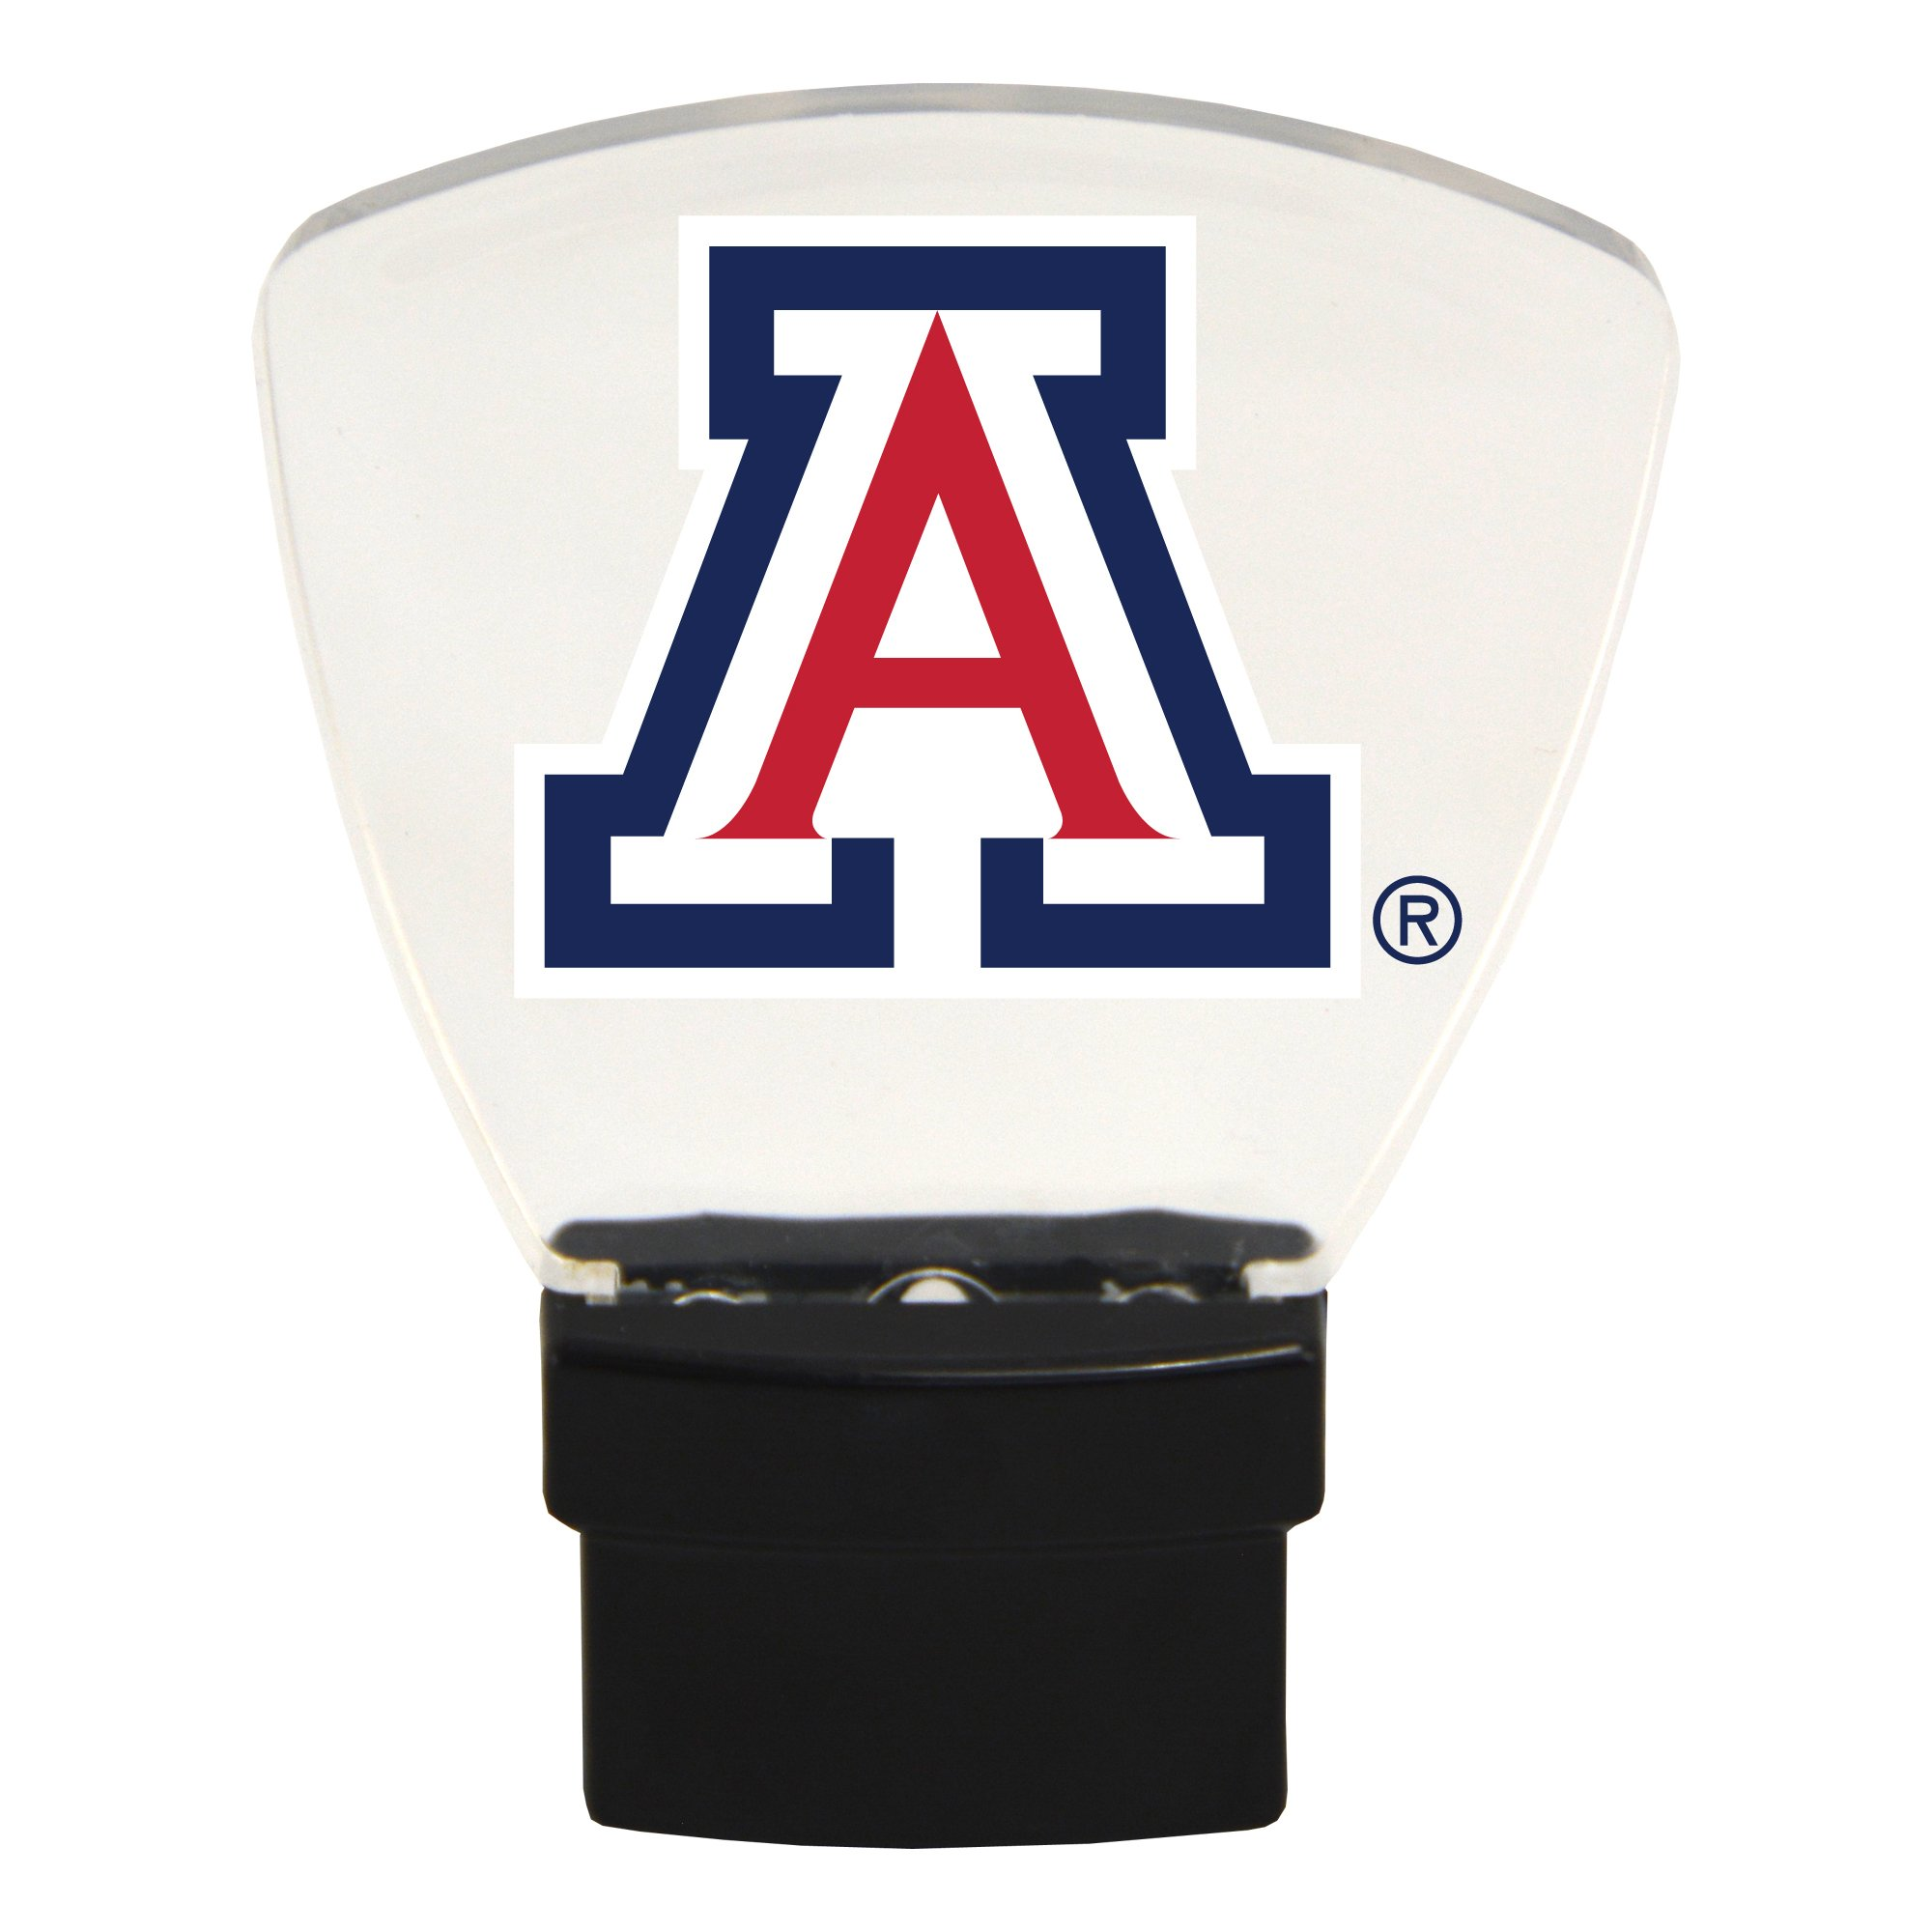 Authentic Street Signs NCAA Officially Licensed-LED NIGHT LIGHT-Super Energy Efficient-Prime Power Saving 0.5 watt, Plug In-Great Sports Fan gift for Adults-Babies-Kids Room (Arizona Wildcats)